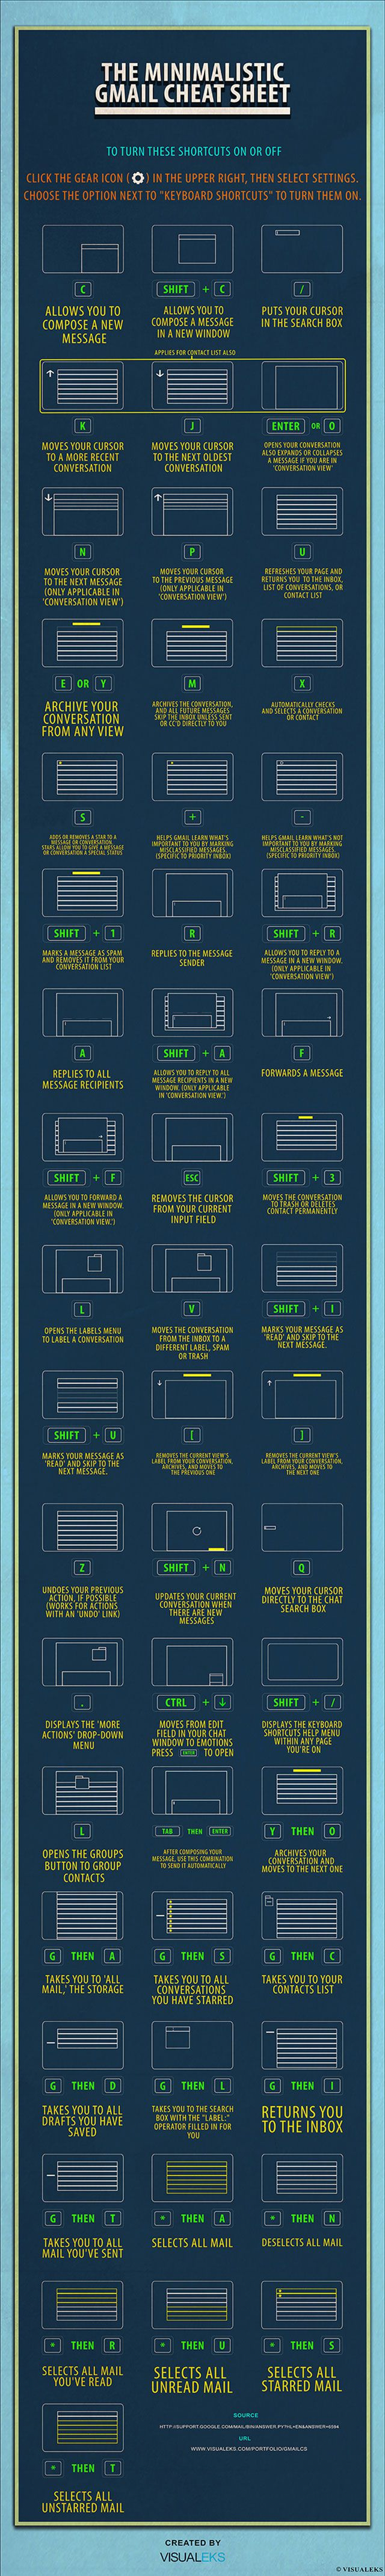 infographie-raccourcis-clavier-gmail-2